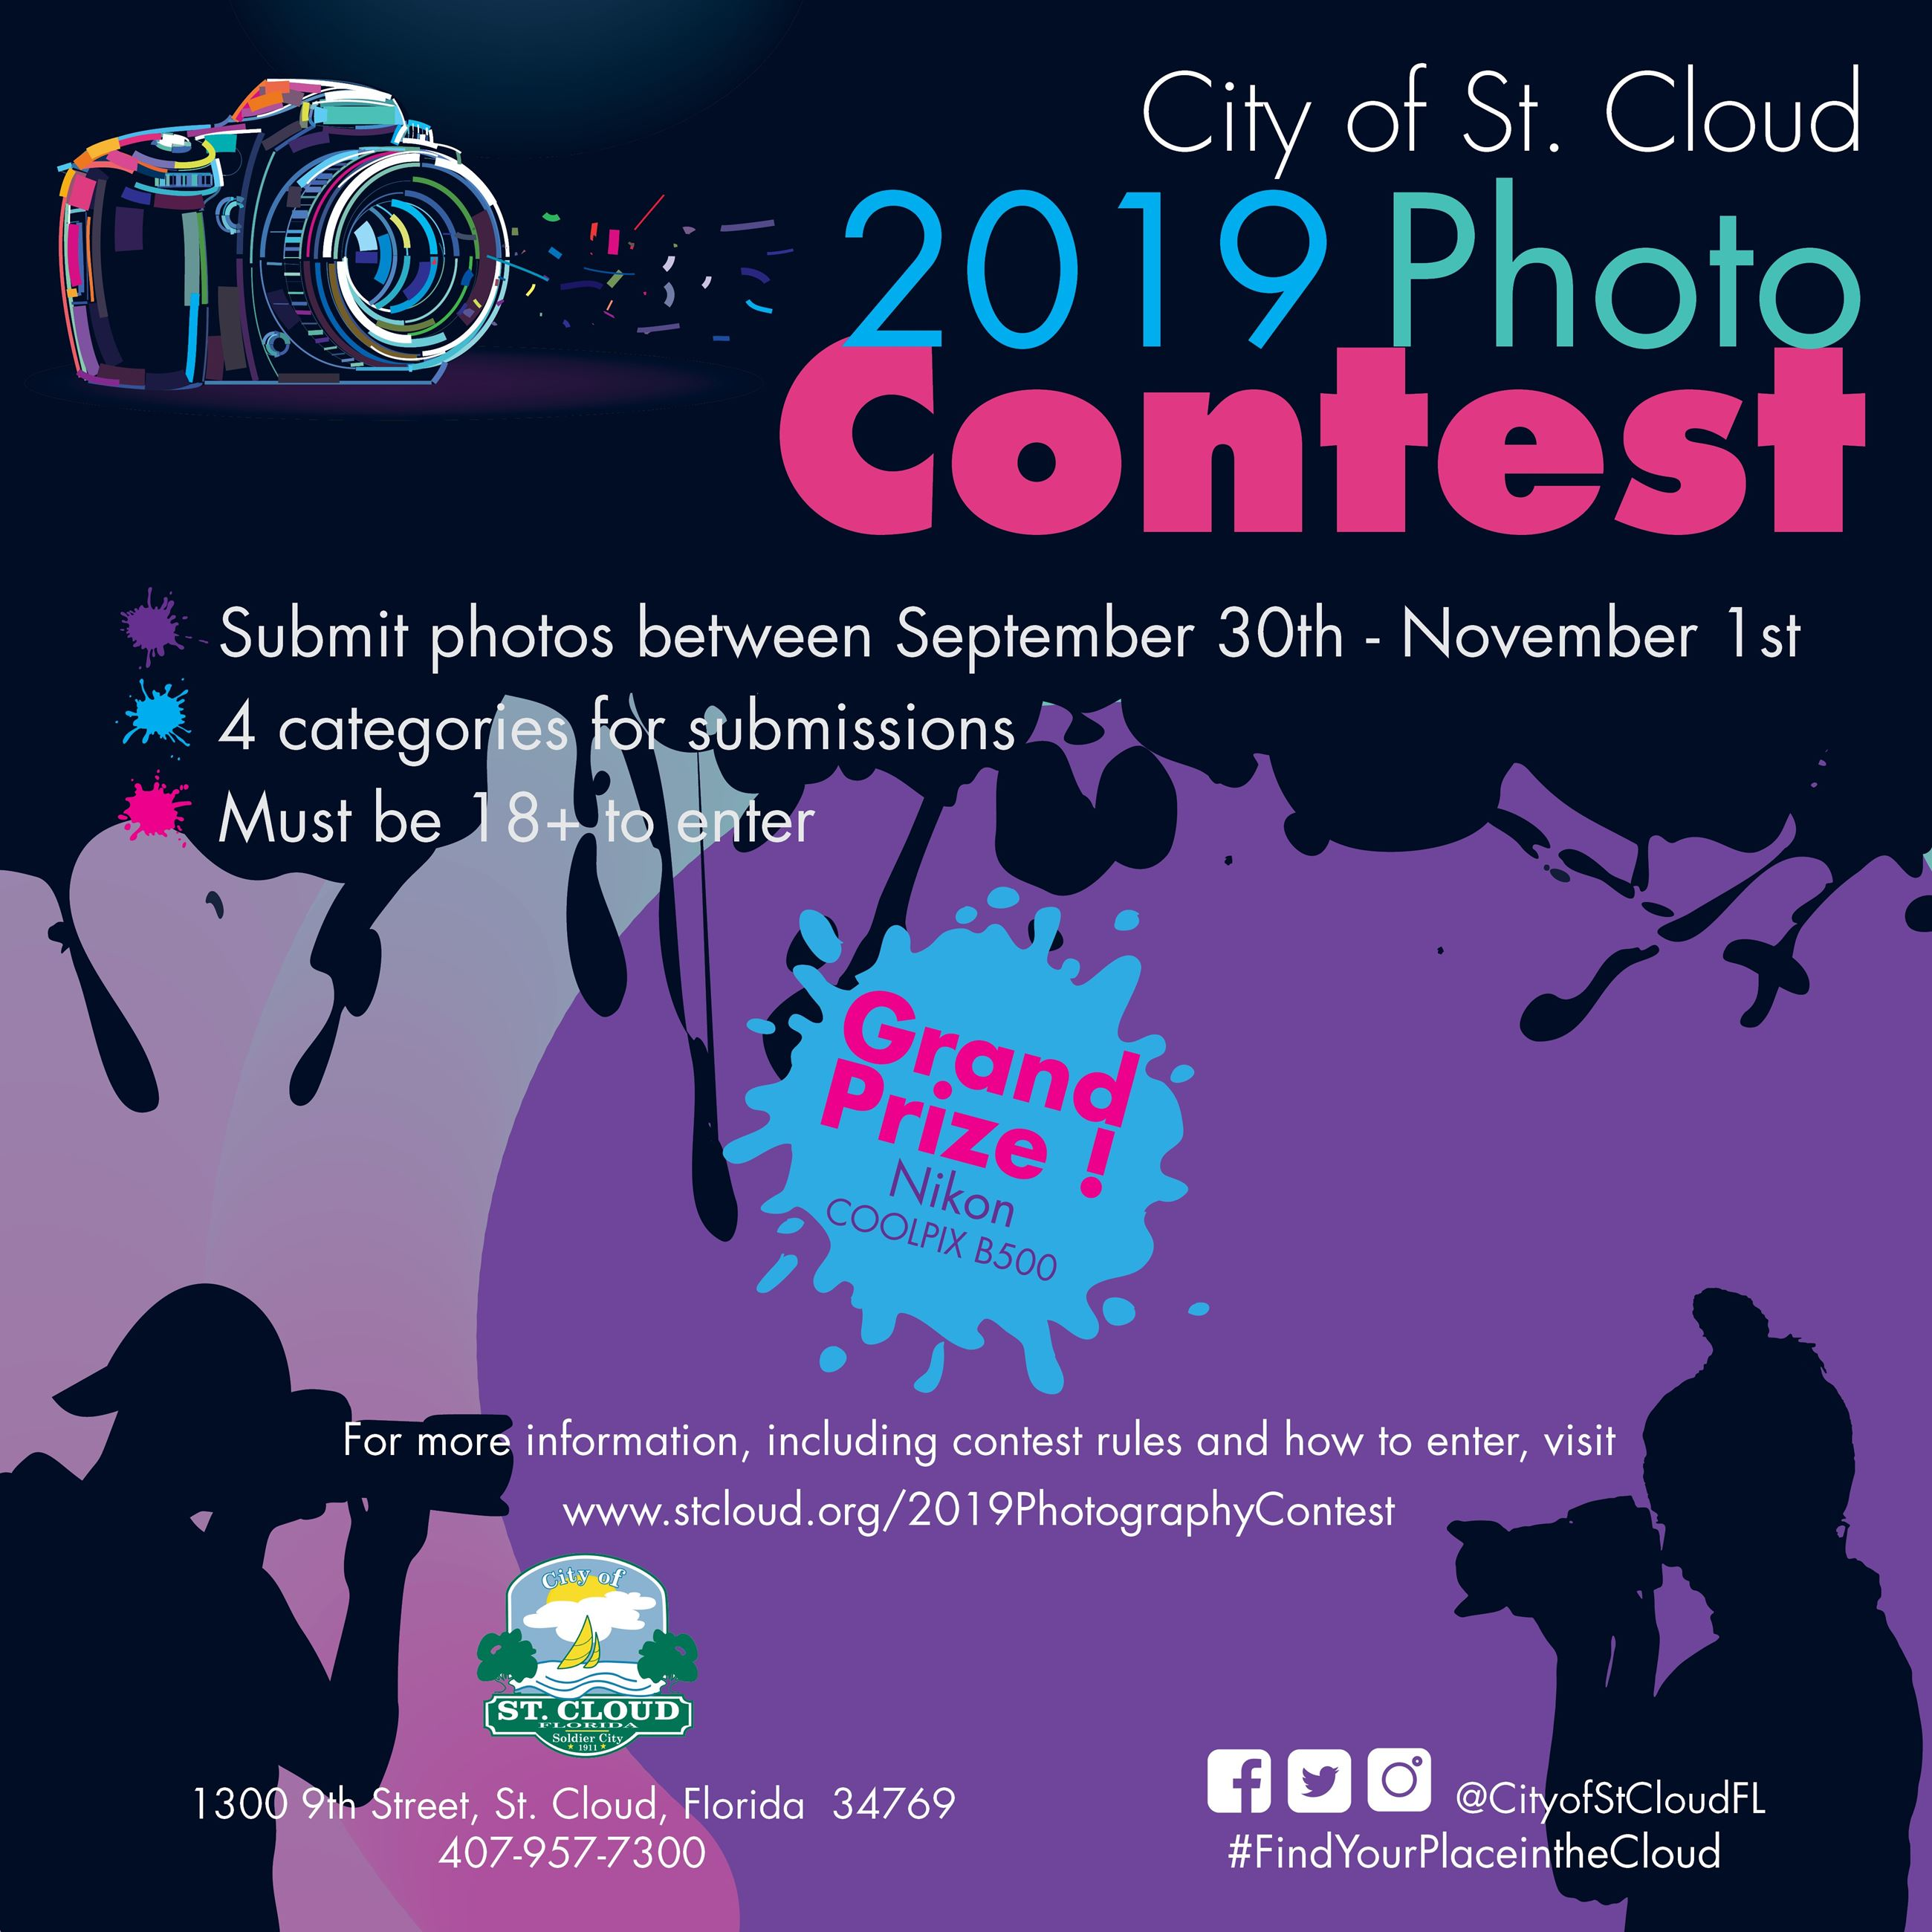 2019 Photo Contest flyer